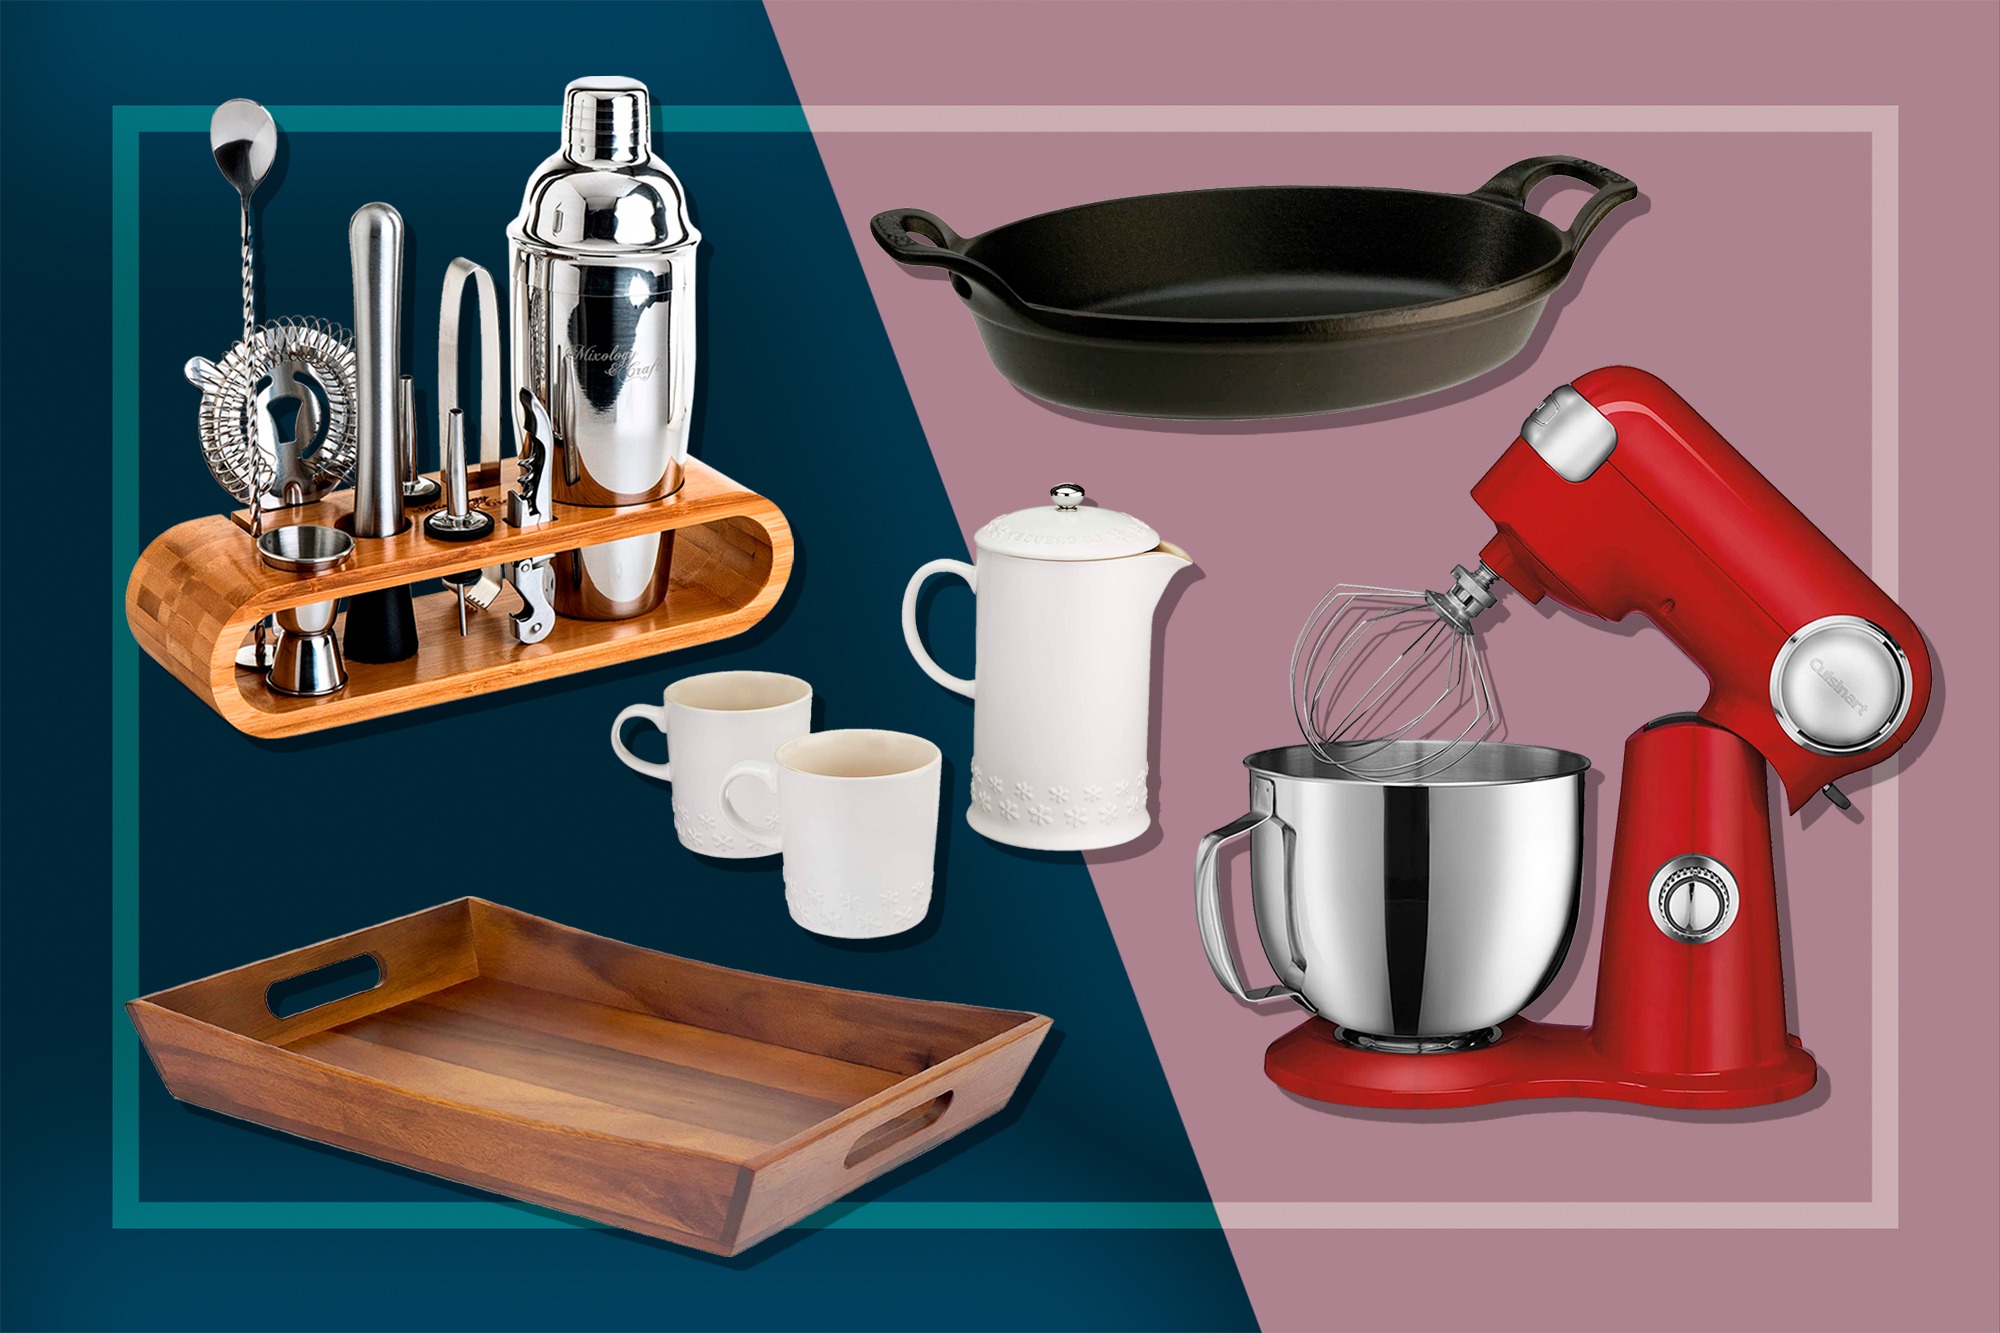 Valentine's Day Gifts: Serving tray, stand mixer, bar tools